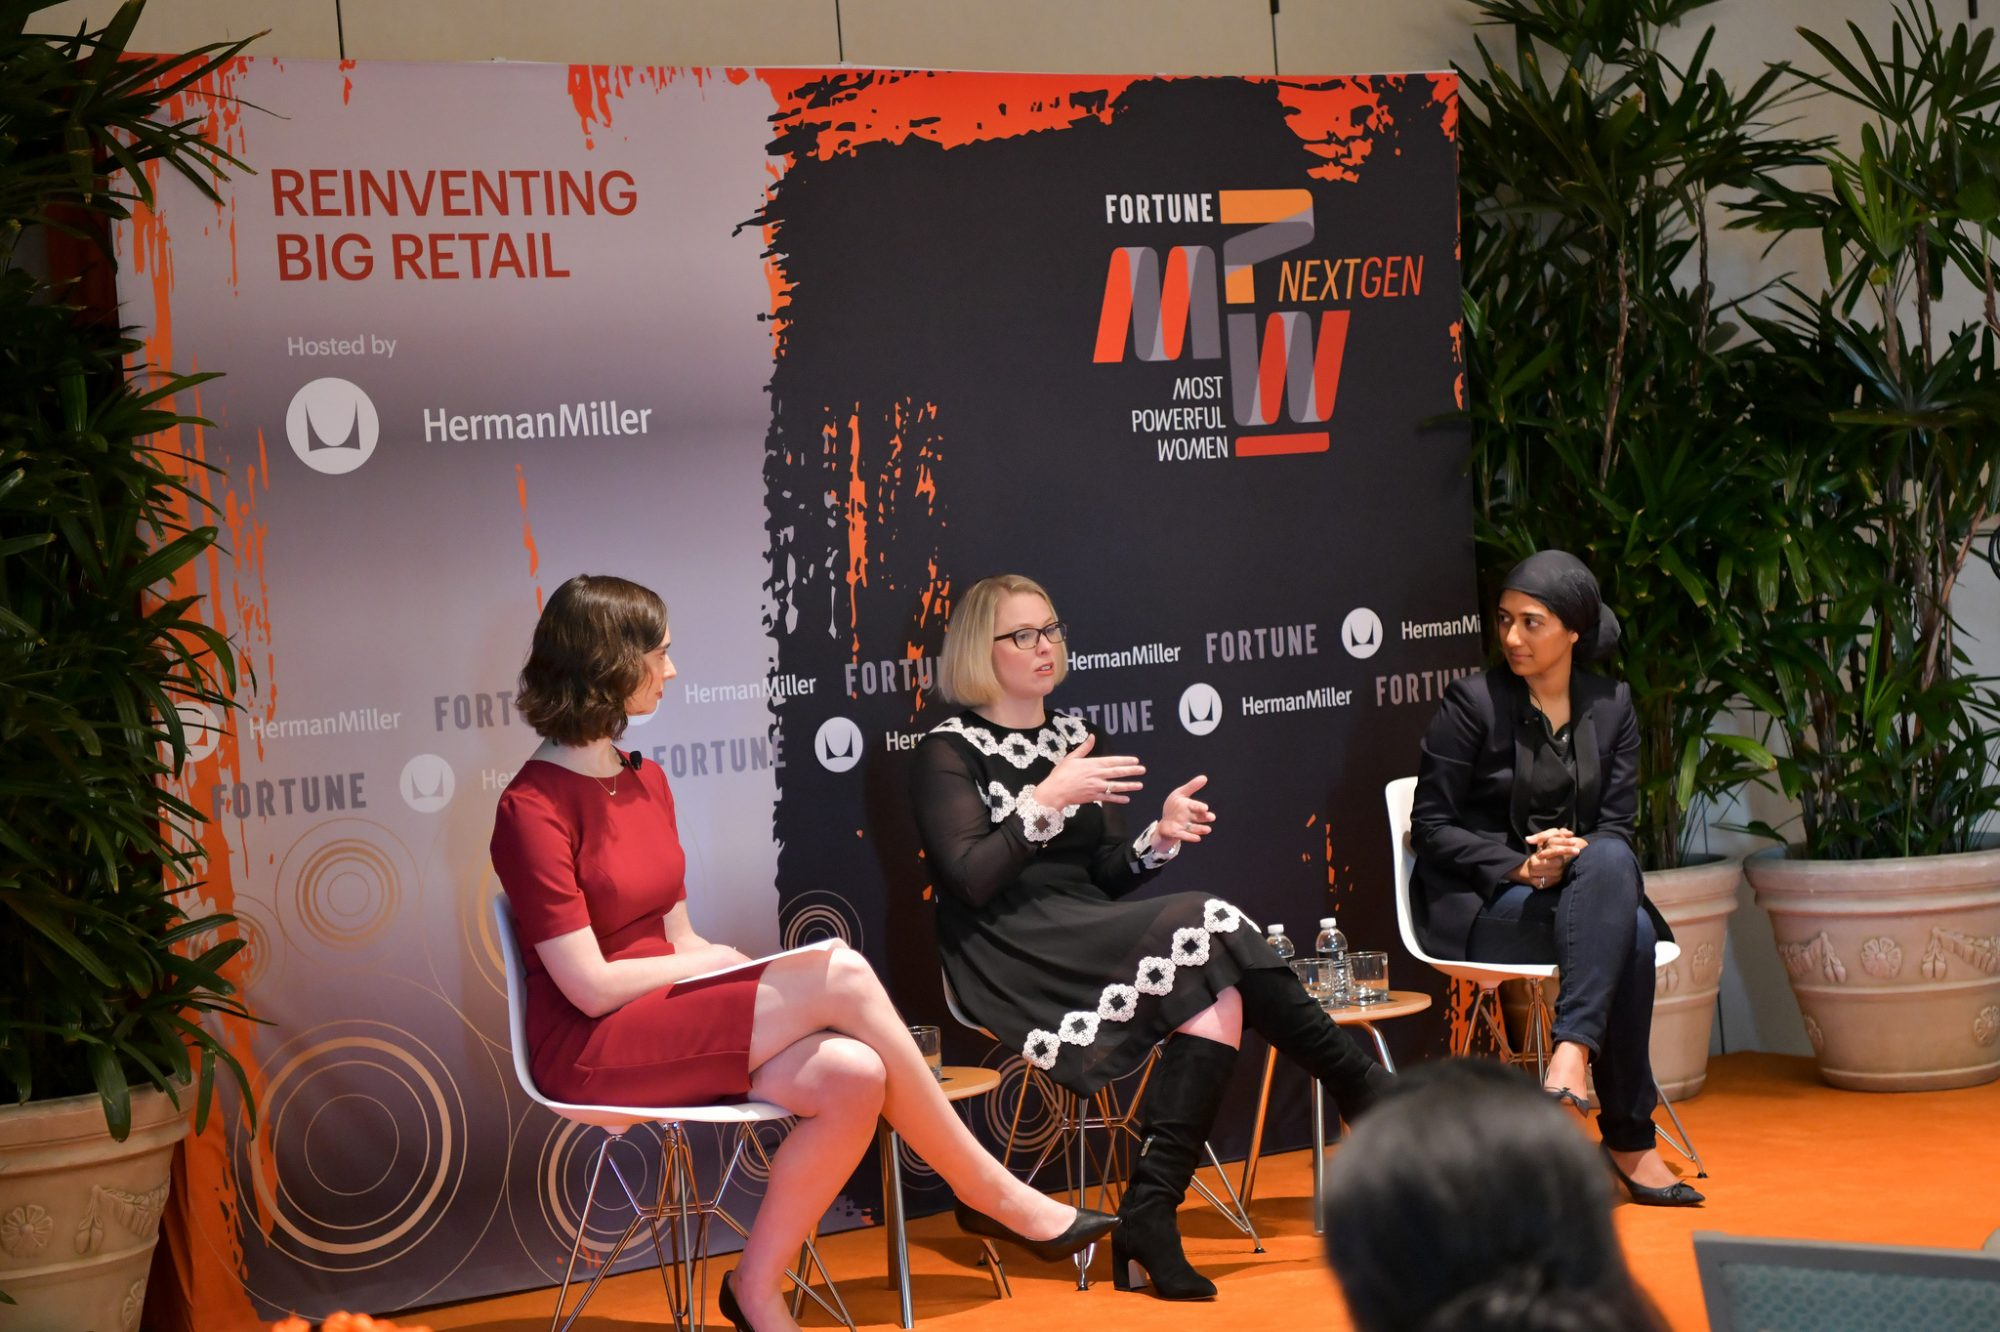 At Home Depot and Walmart, Brick-and-Mortar Retail Is About to Get Way More Personal